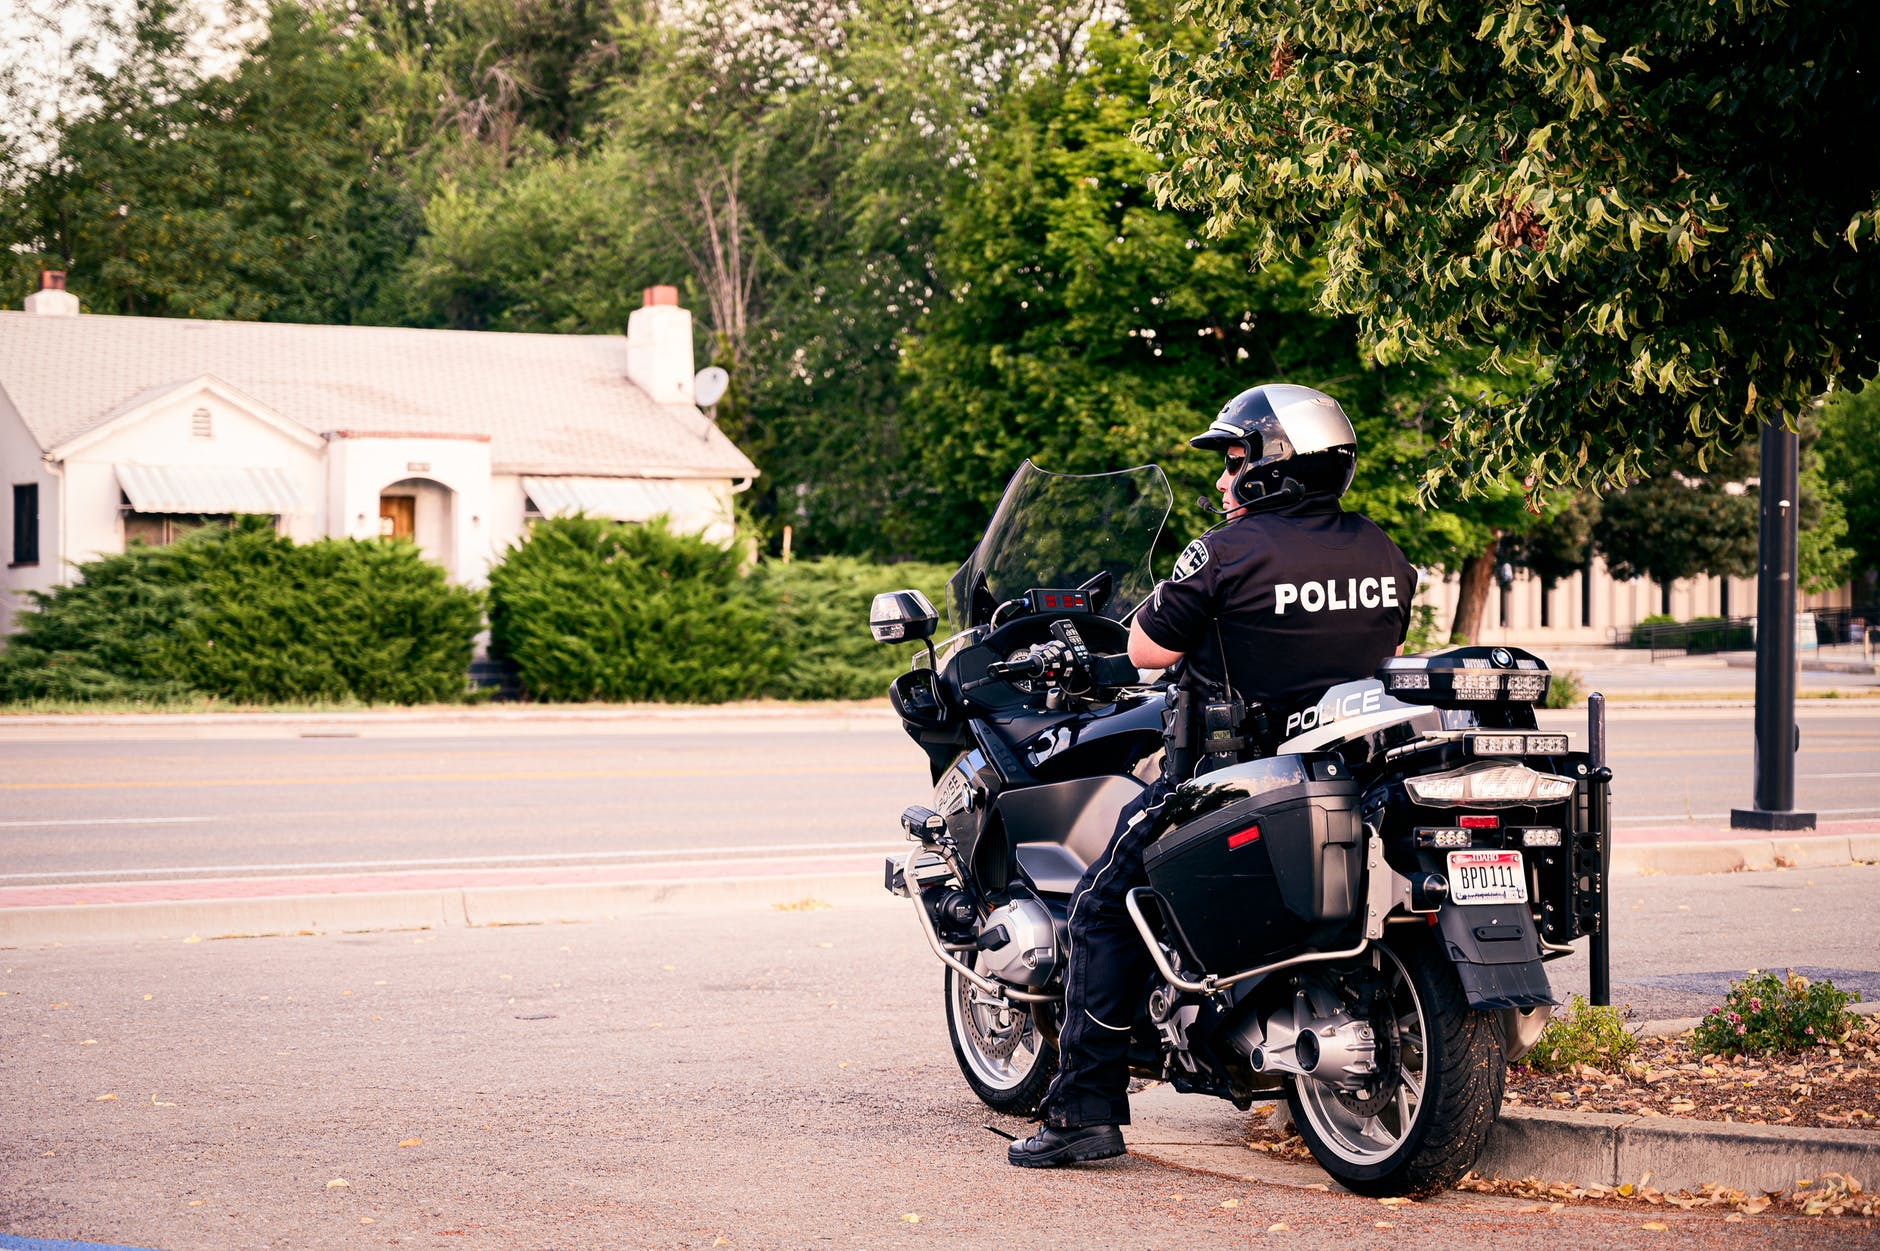 A police officer sitting on his bike during a road patrol. | Photo: Pexels